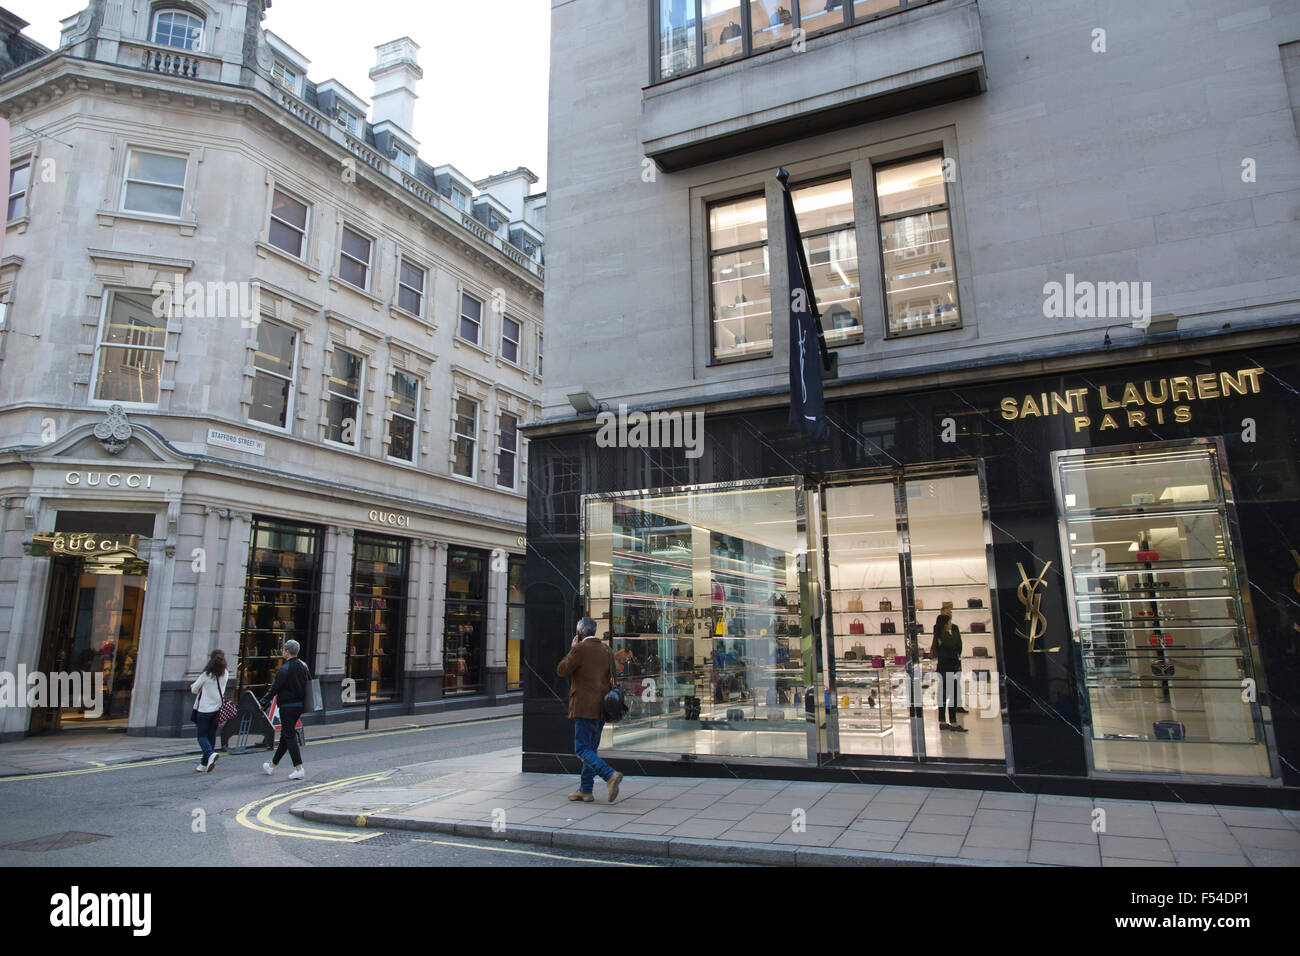 Saint laurent old bond street mayfair london england for Quartiere mayfair londra